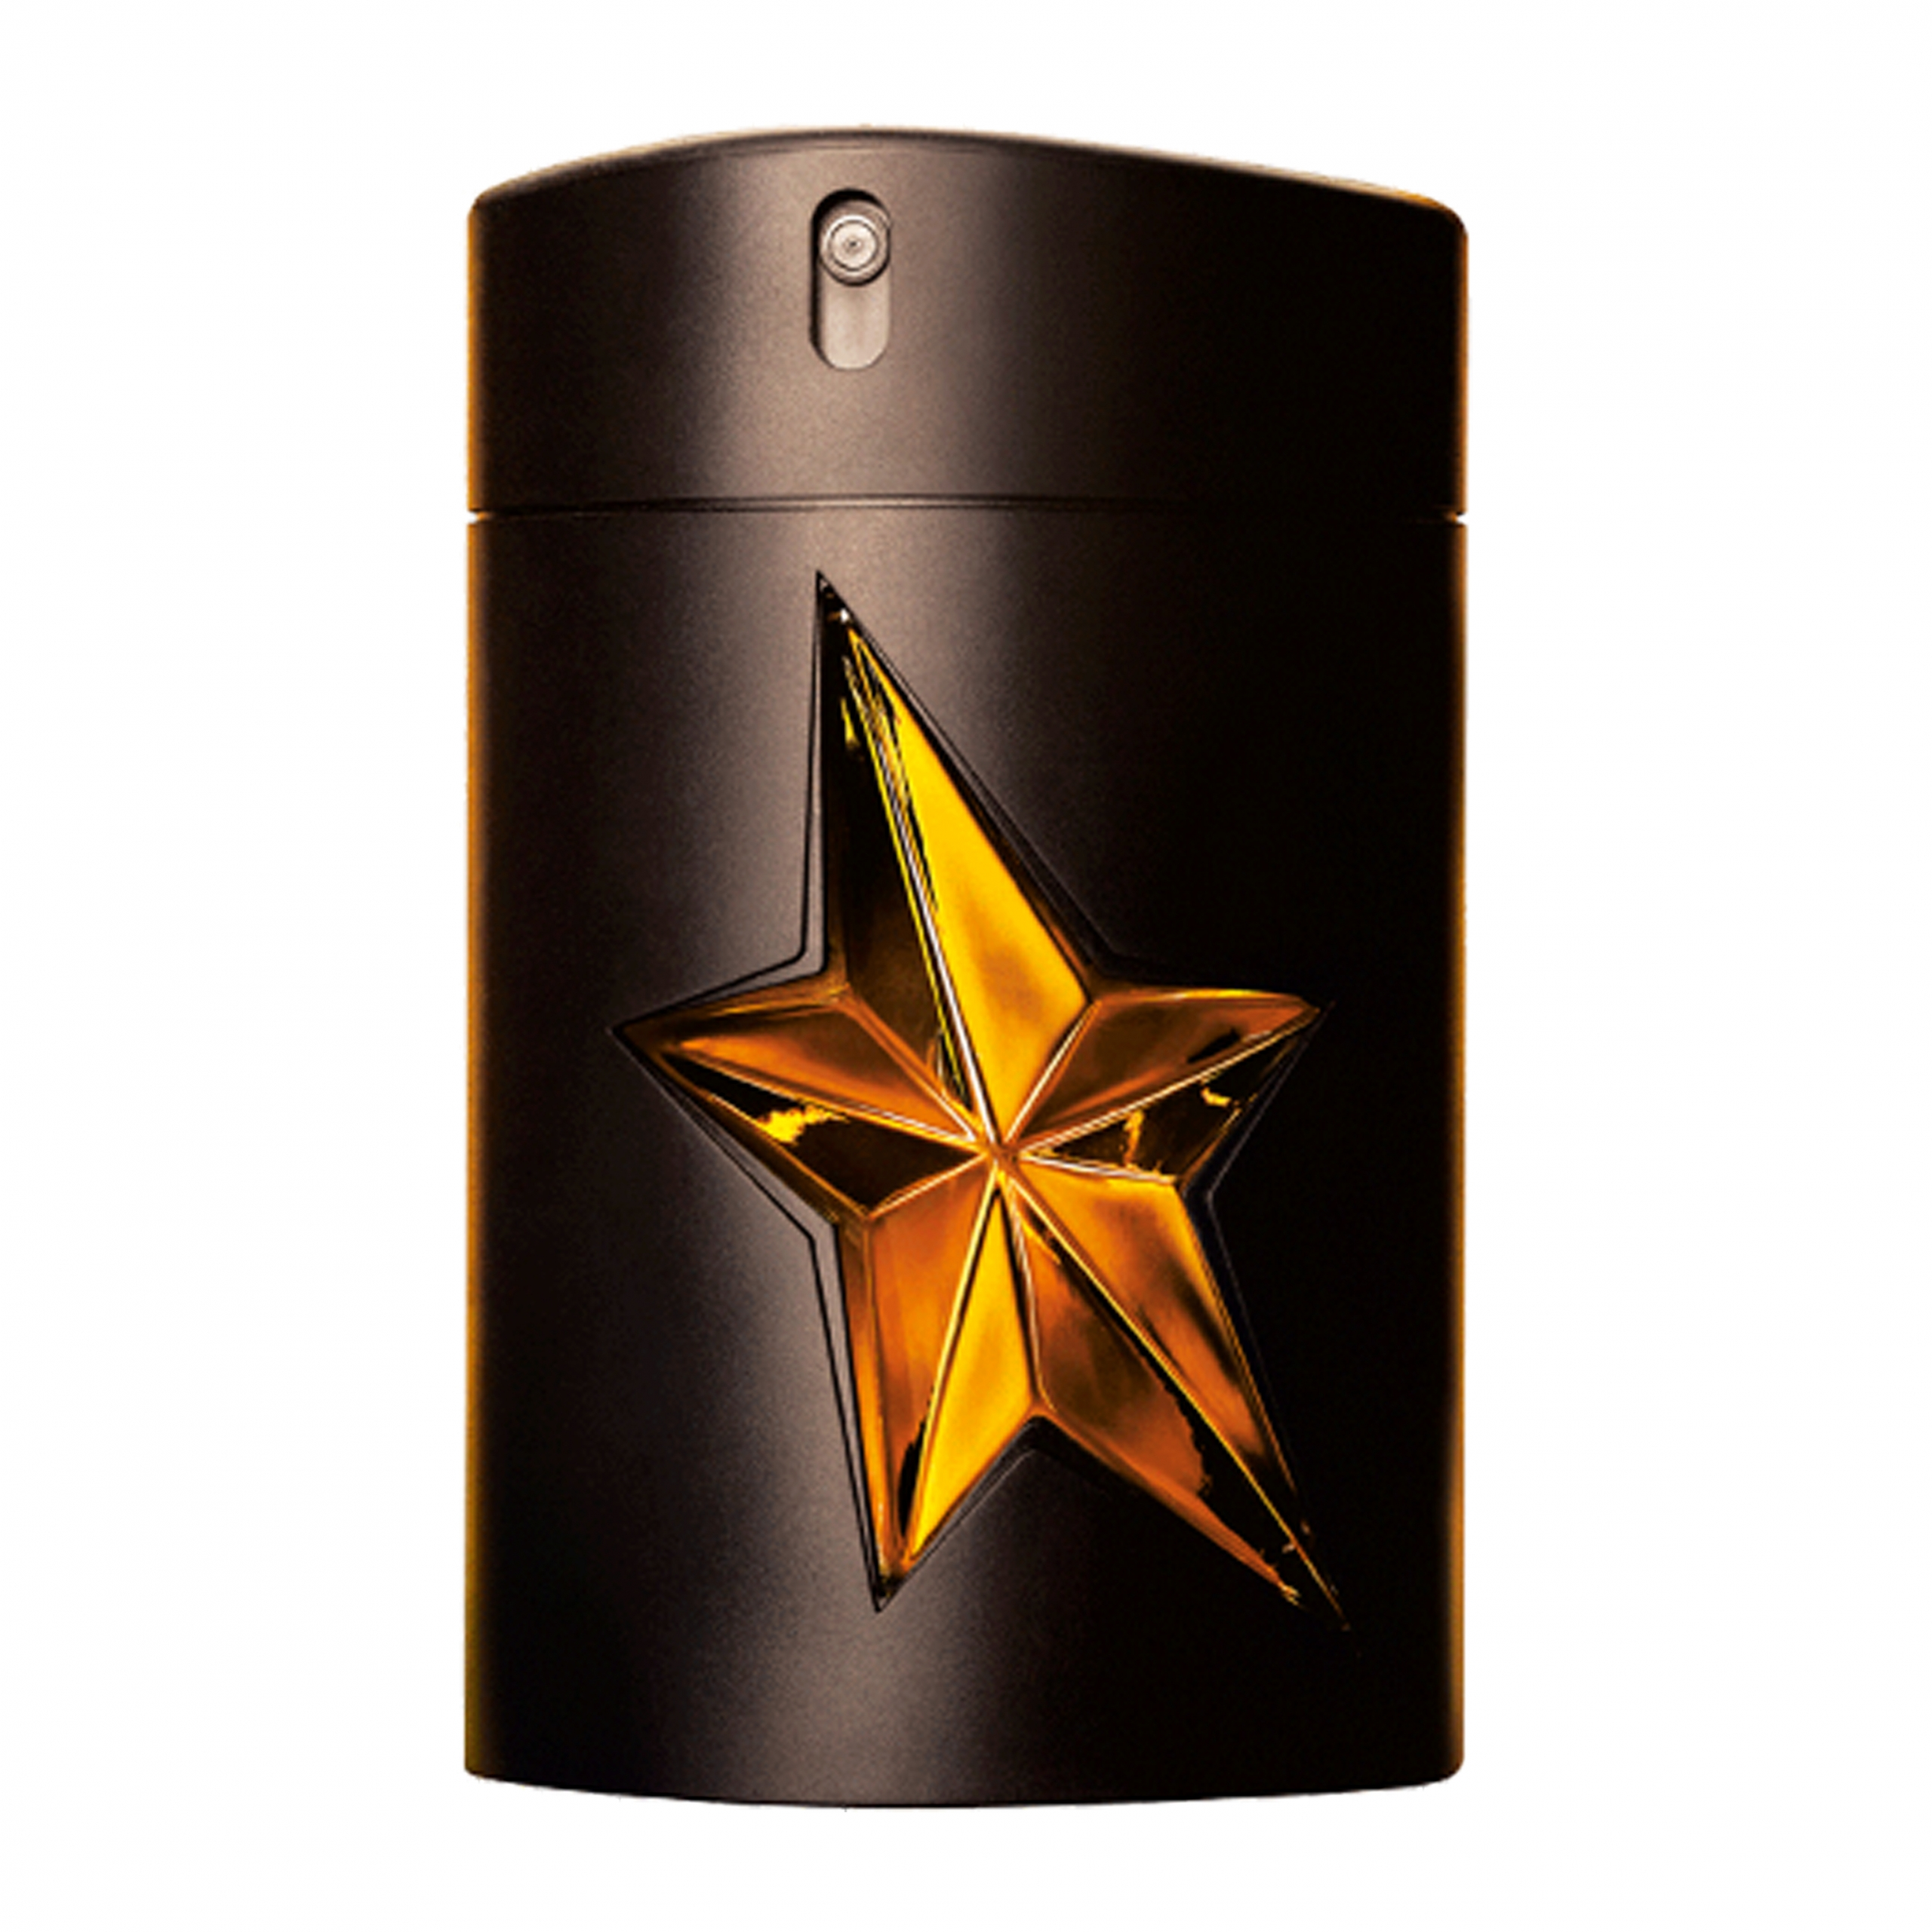 THIERRY MUGLER - A MEN PURE MALT EDT 100 ML